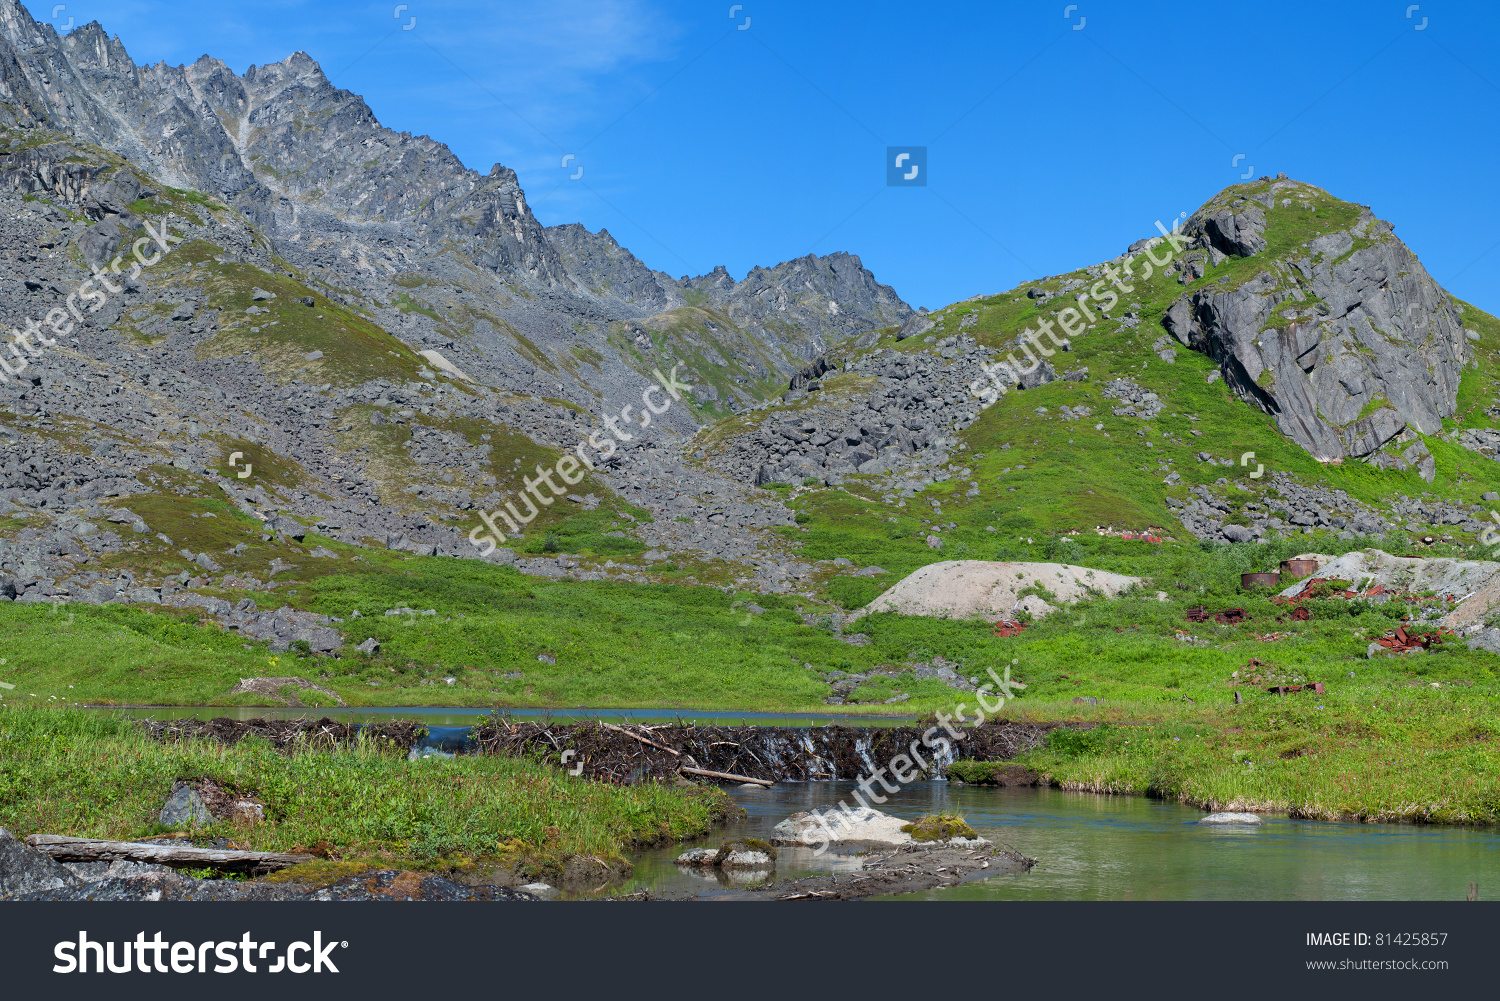 Beaver Dam In Archangel Valley In Hatcher Pass, Alaska Stock Photo.